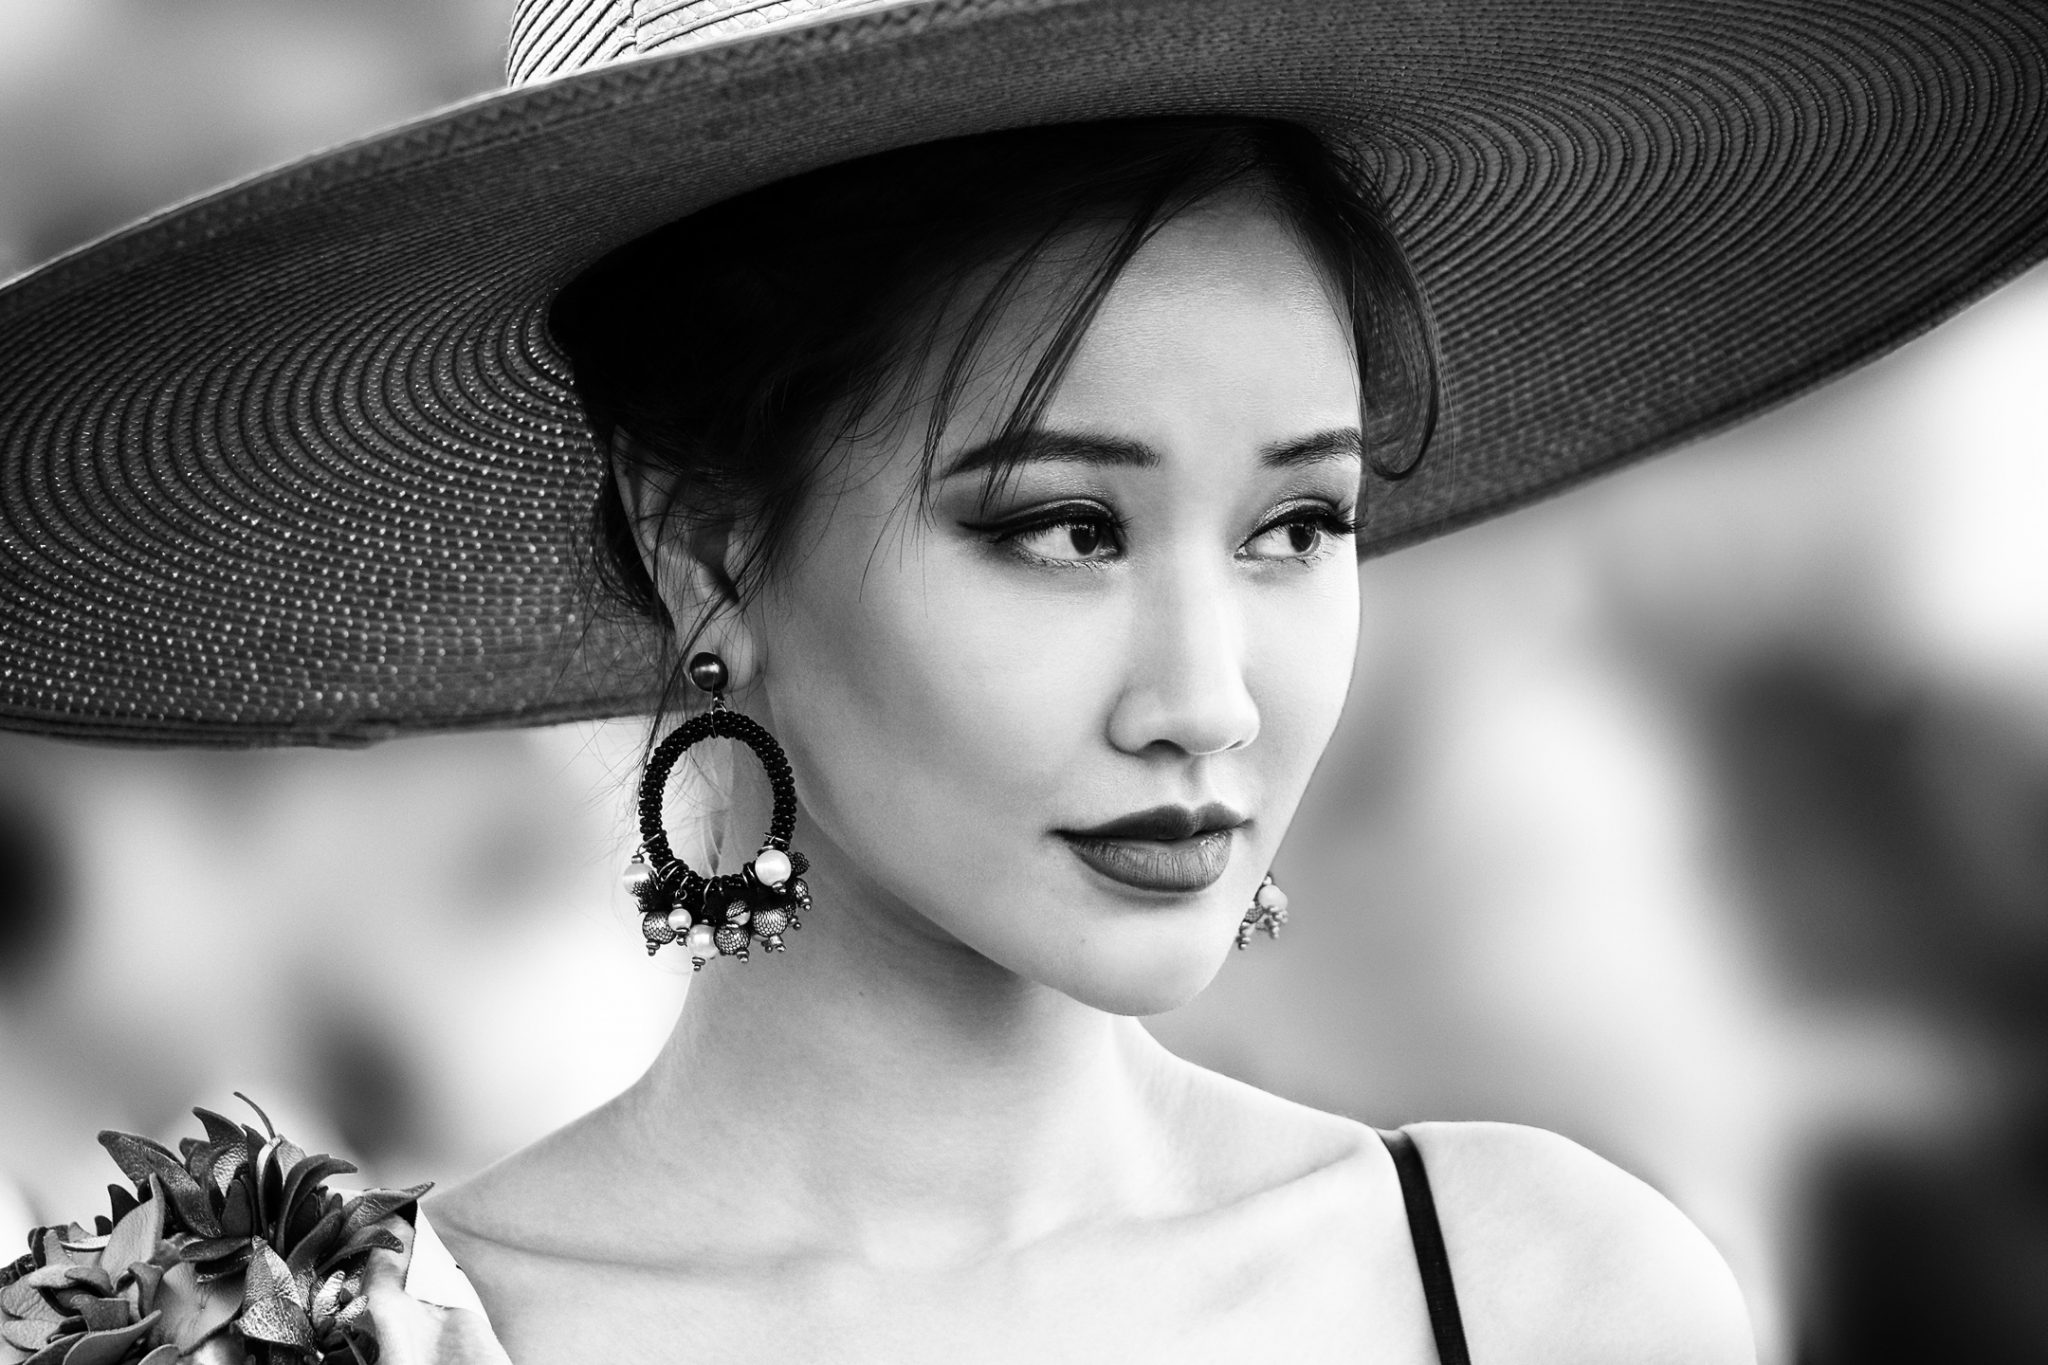 French Photographer Fashion Photography Christian Dior / Asian Model